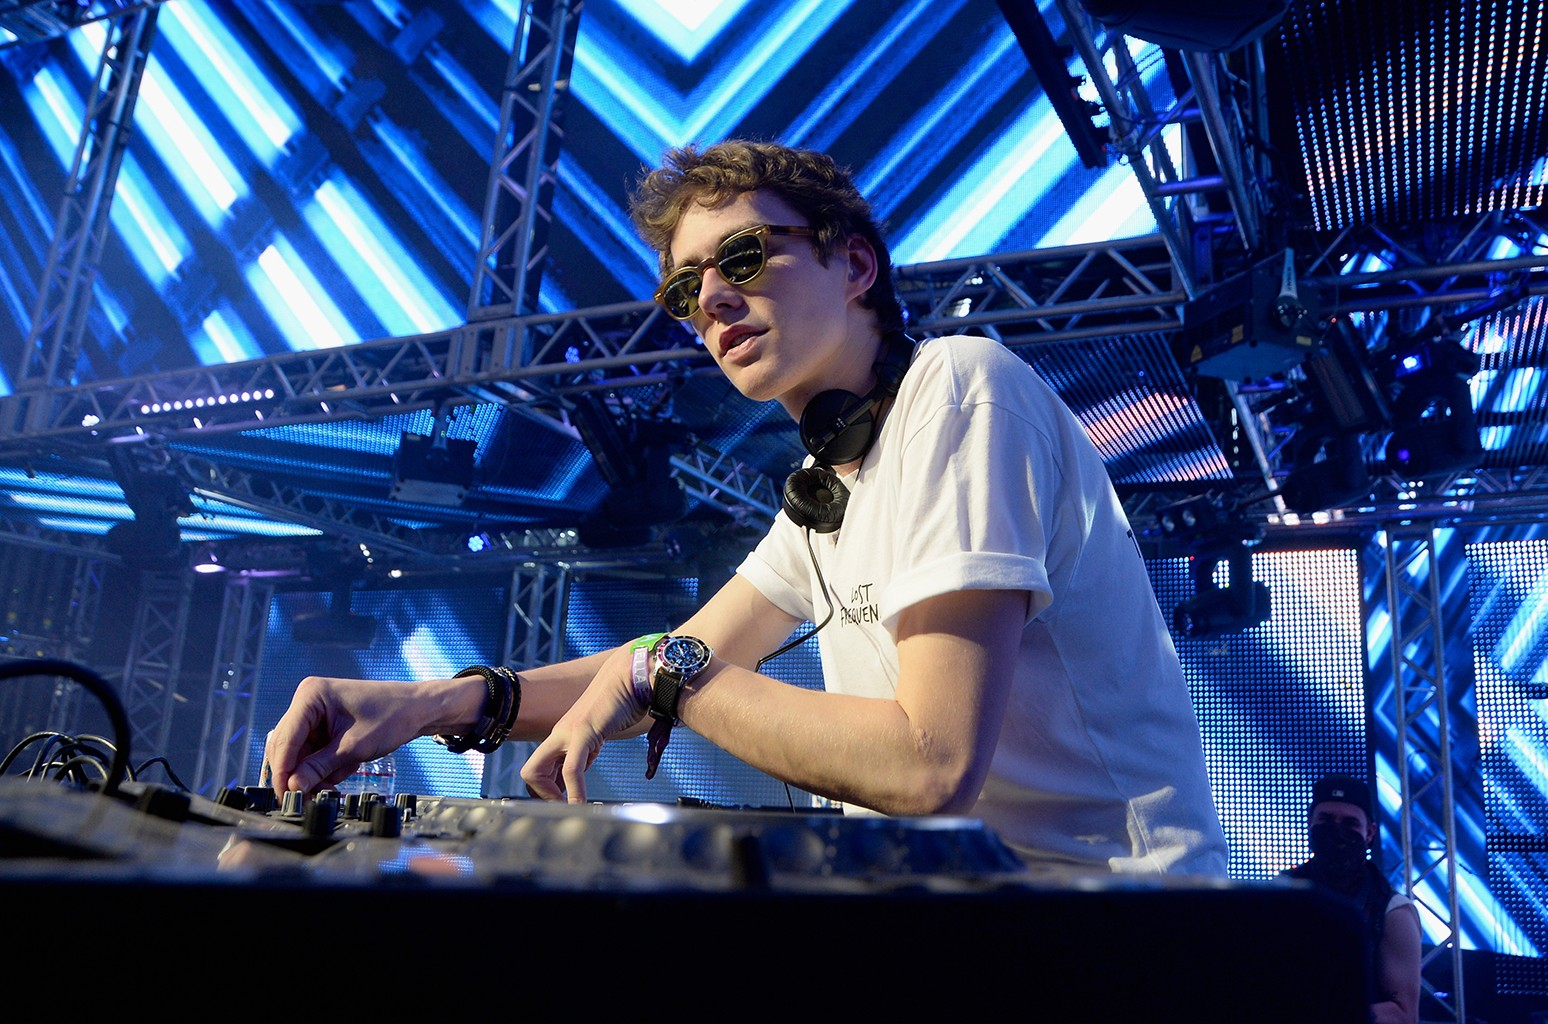 Felix De Laet of Lost Frequencies performs onstage during day 2 of the 2016 Coachella Valley Music & Arts Festival Weekend 1 at the Empire Polo Club on April 16, 2016 in Indio, Calif.